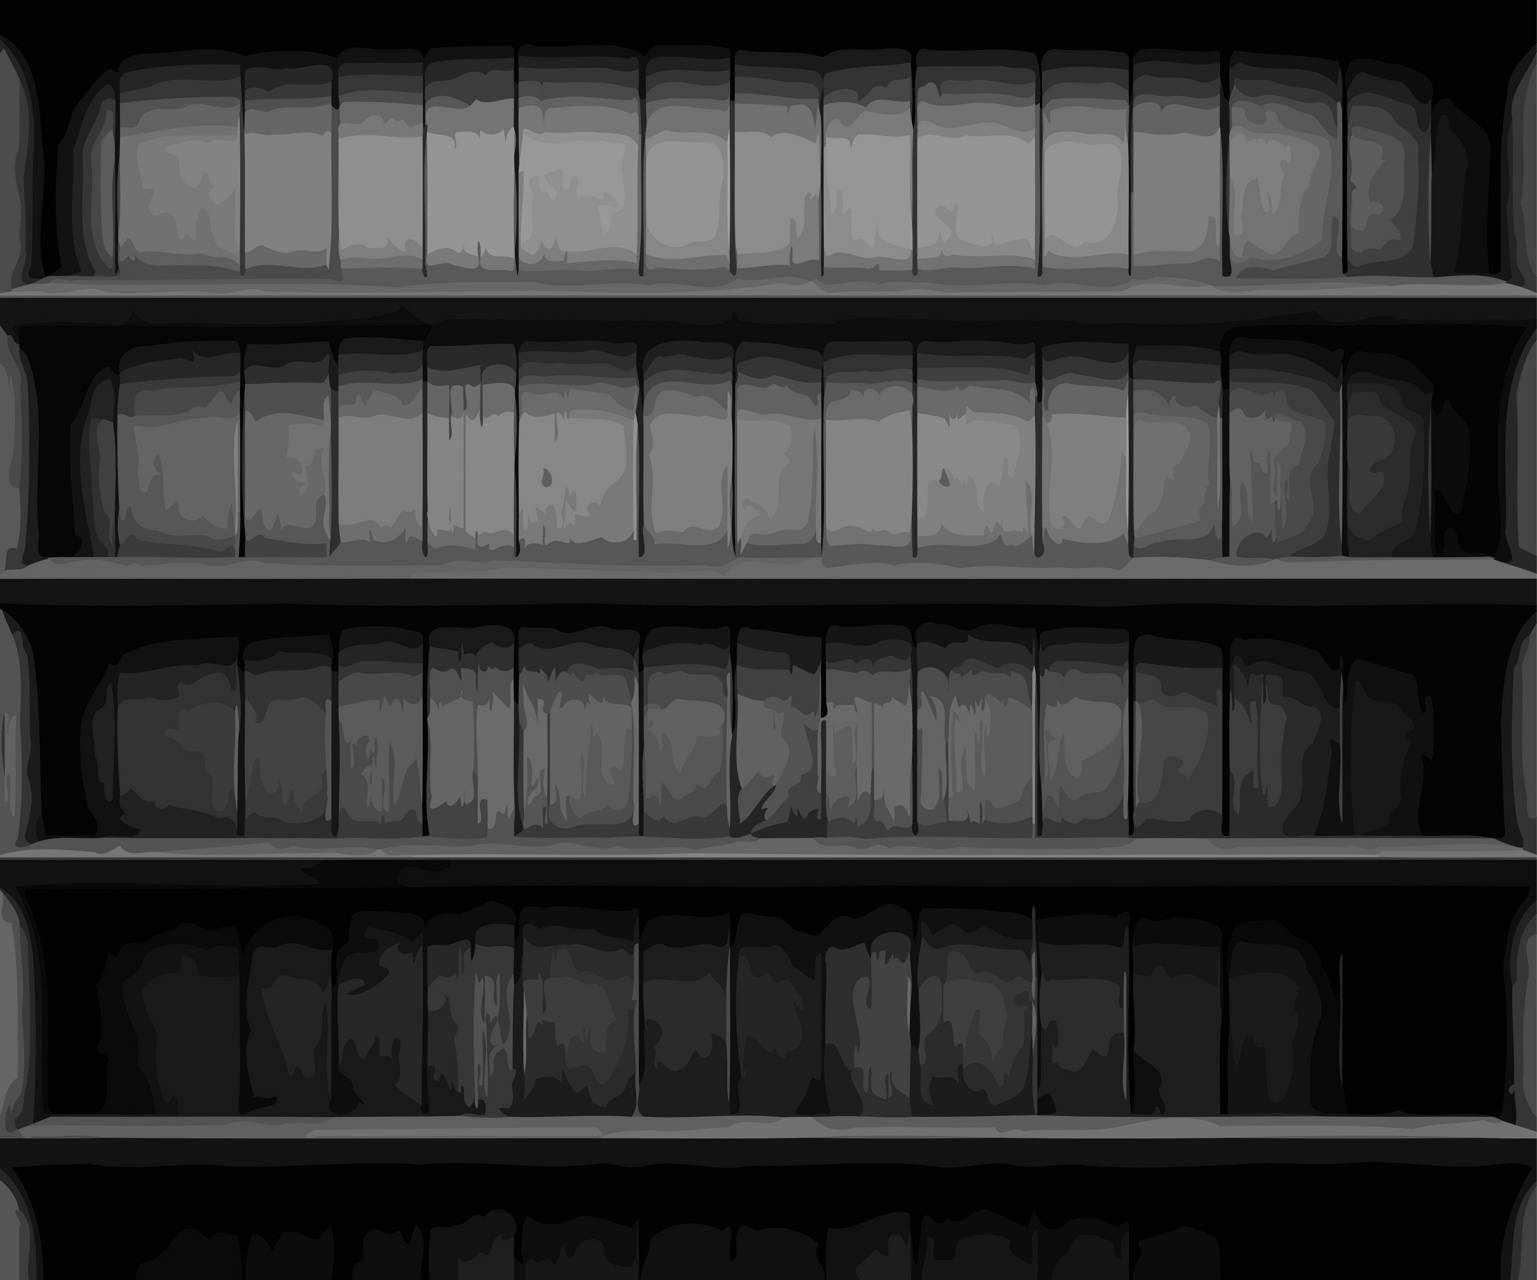 Dark Shelf 01